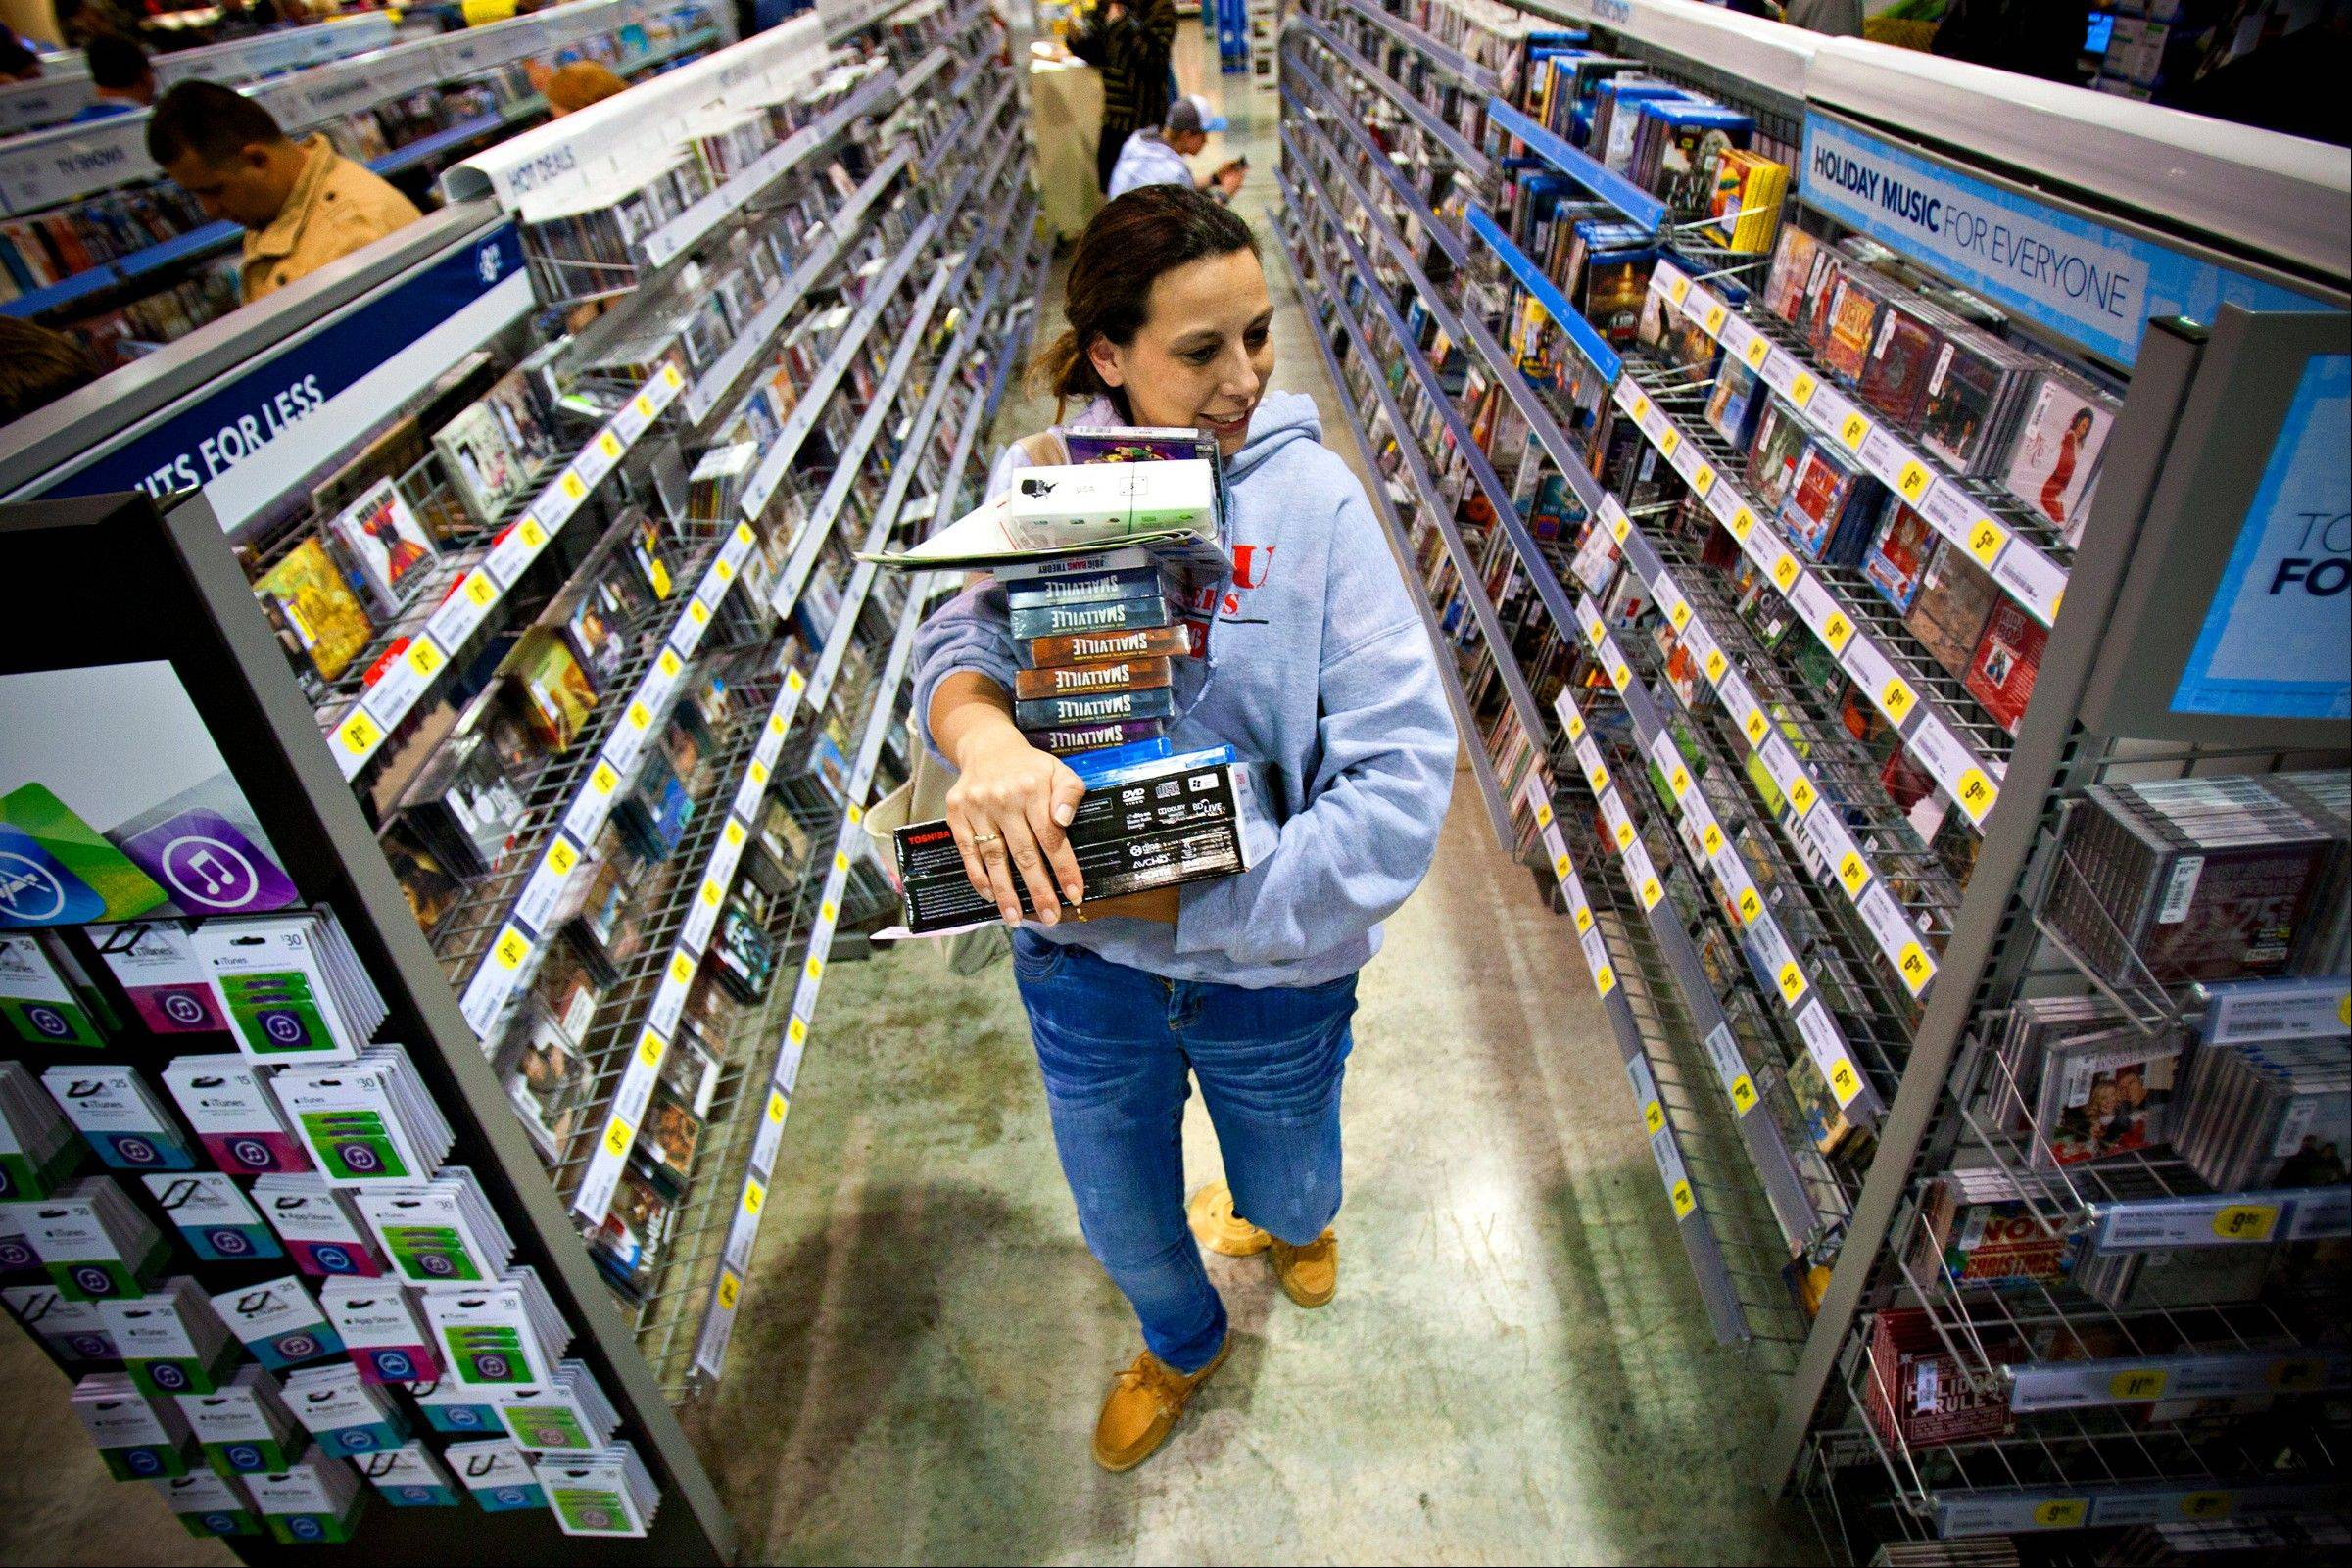 FILTonya Thomas, of Russellville, Ky., makes her way through the aisles at Best Buy in Bowling Green, Ky.